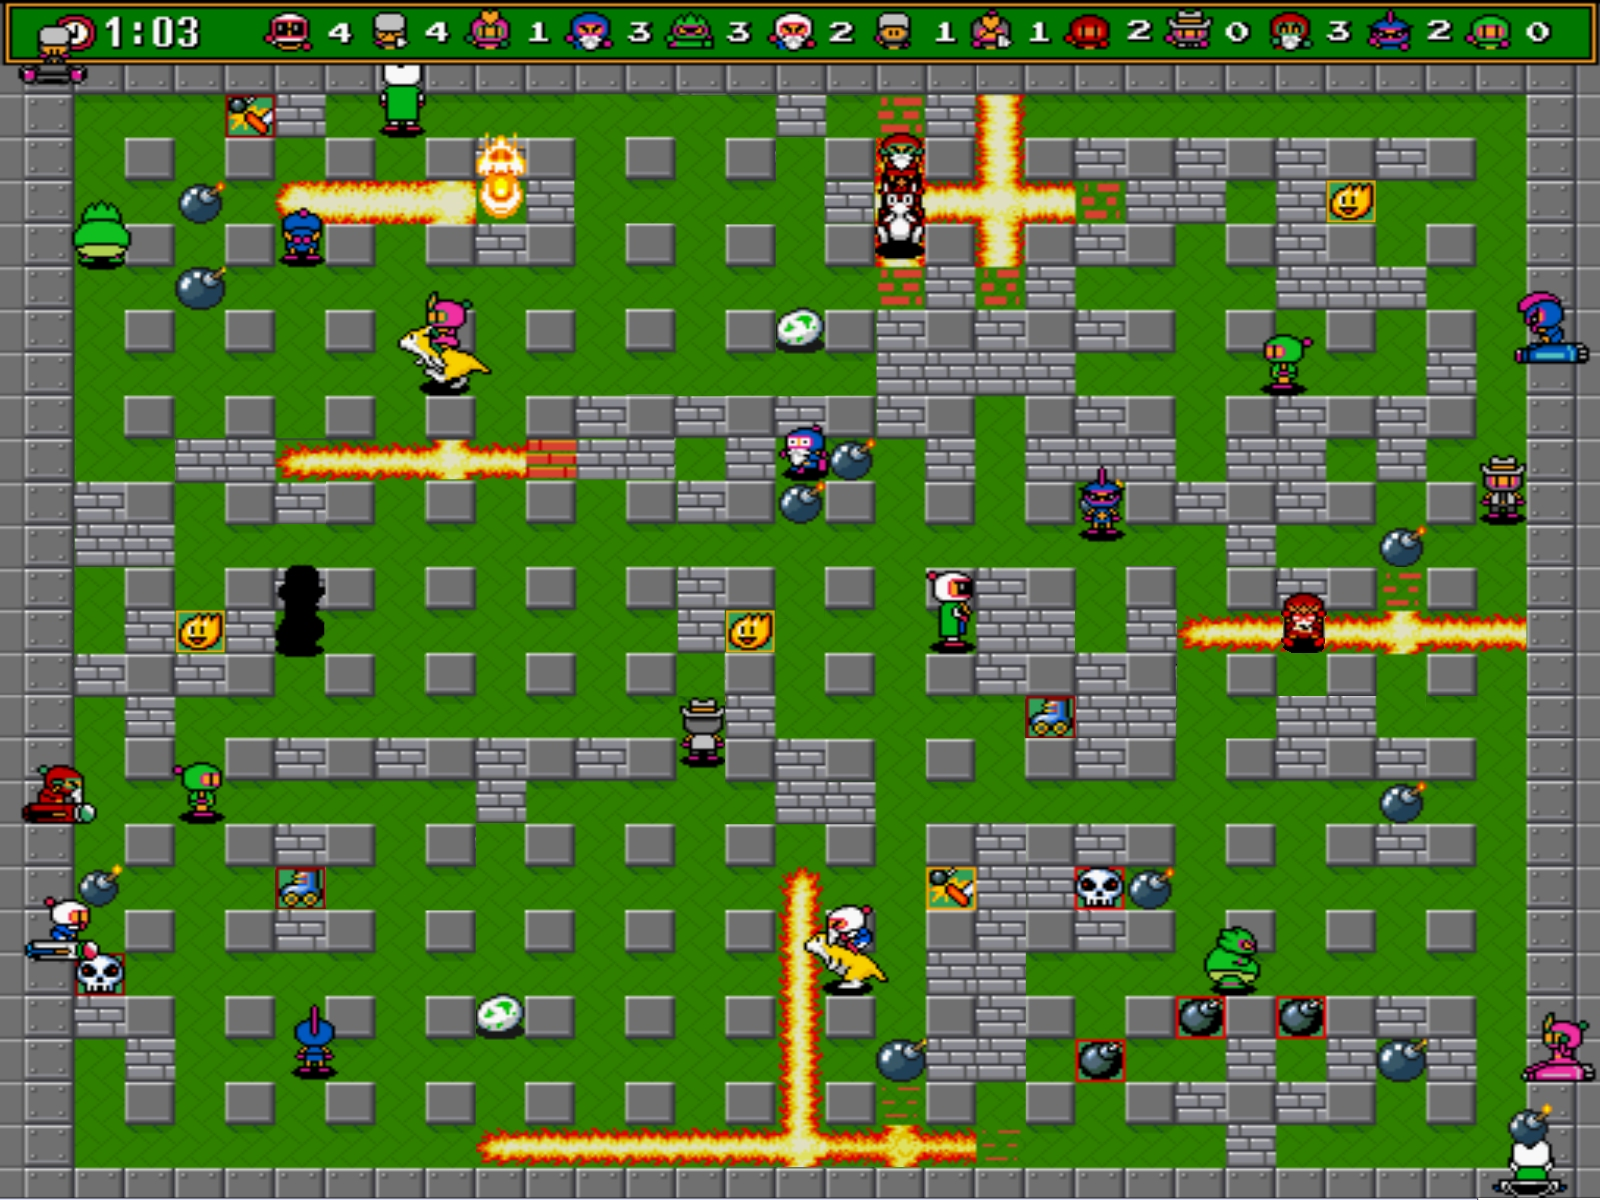 retro:-bomberman-wallpapers 20889 1600x1